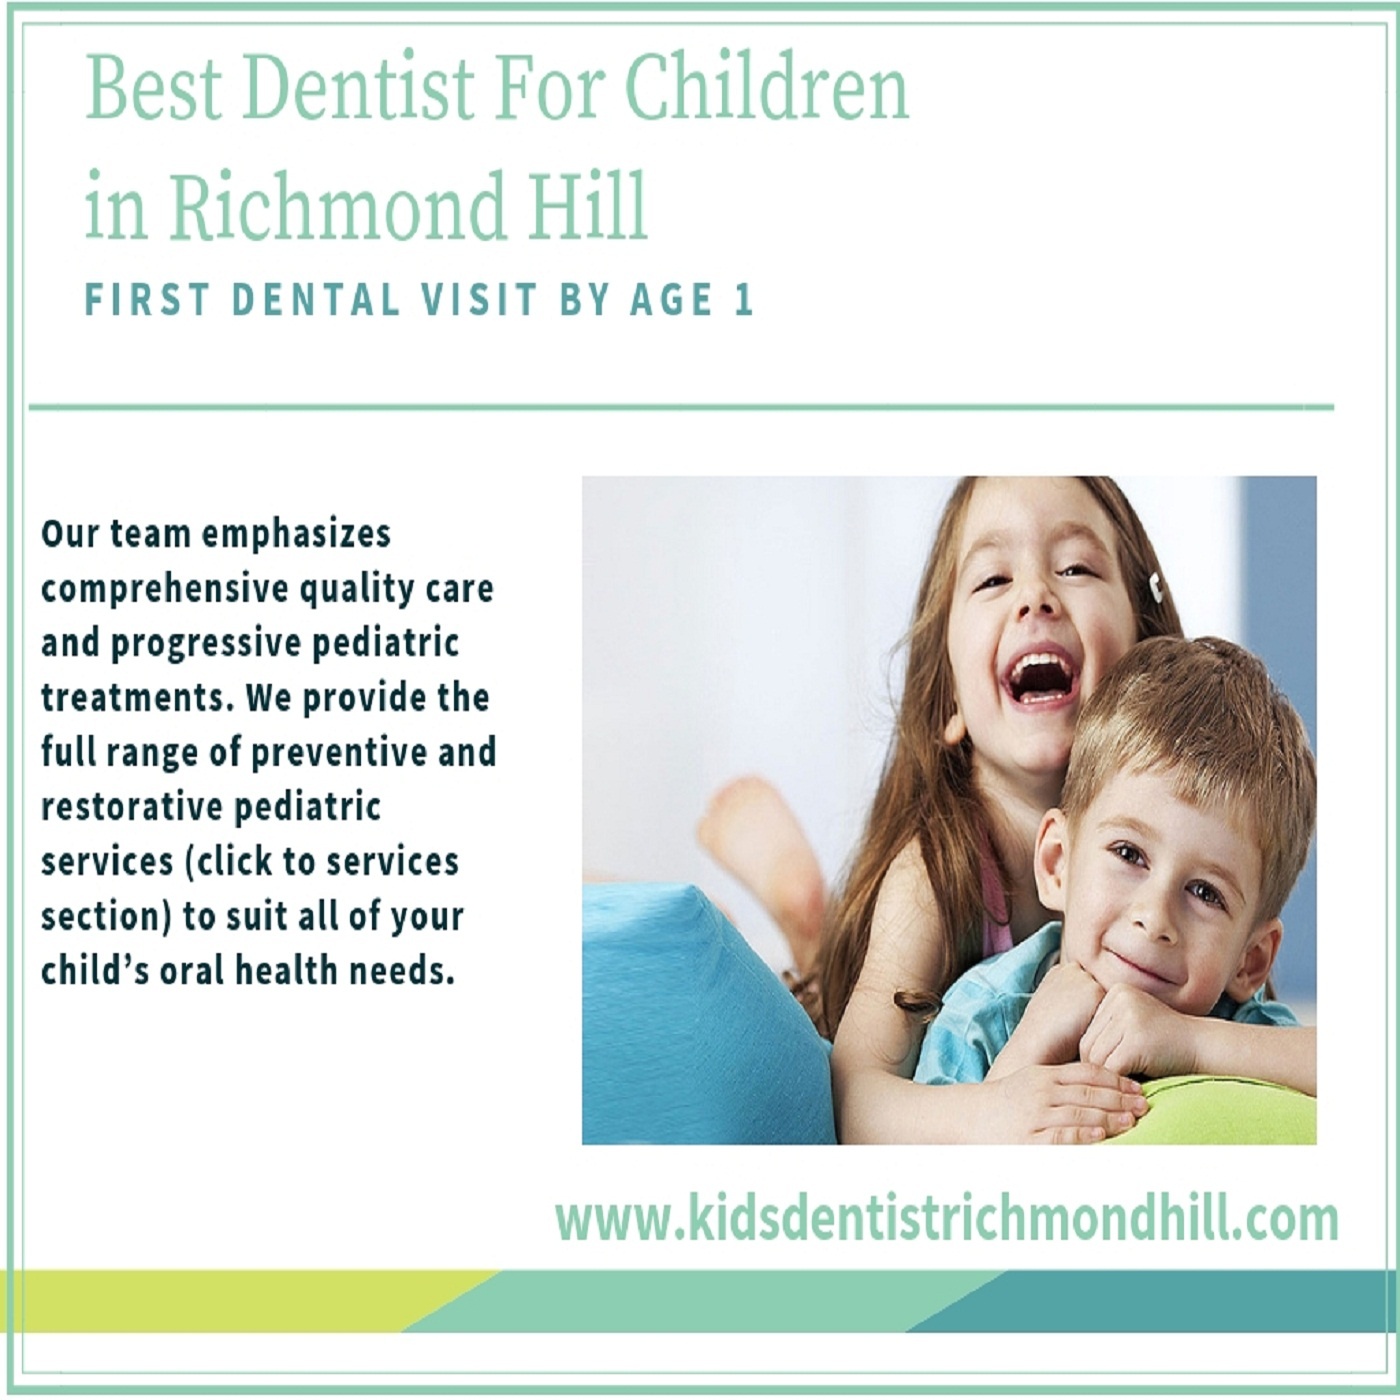 Hiring the professional kids dentist in Richmond Hill